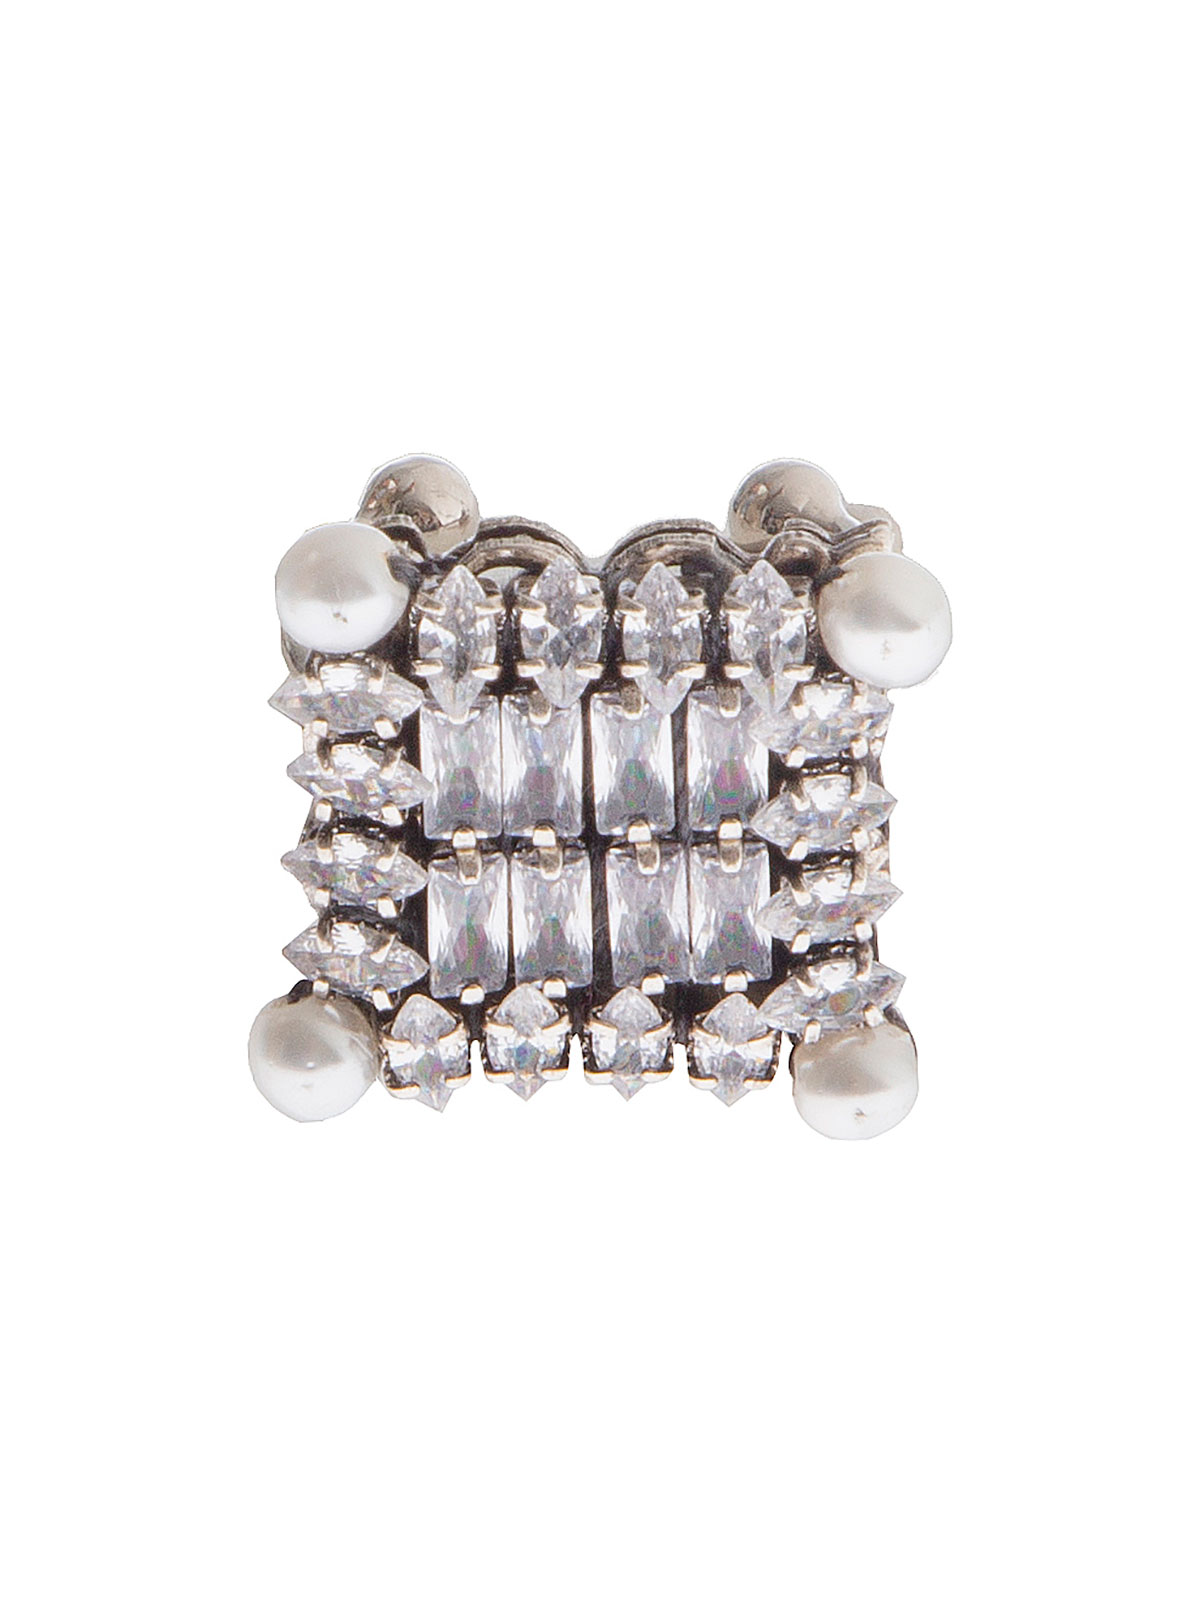 Square ring embellished with crystals and pearls